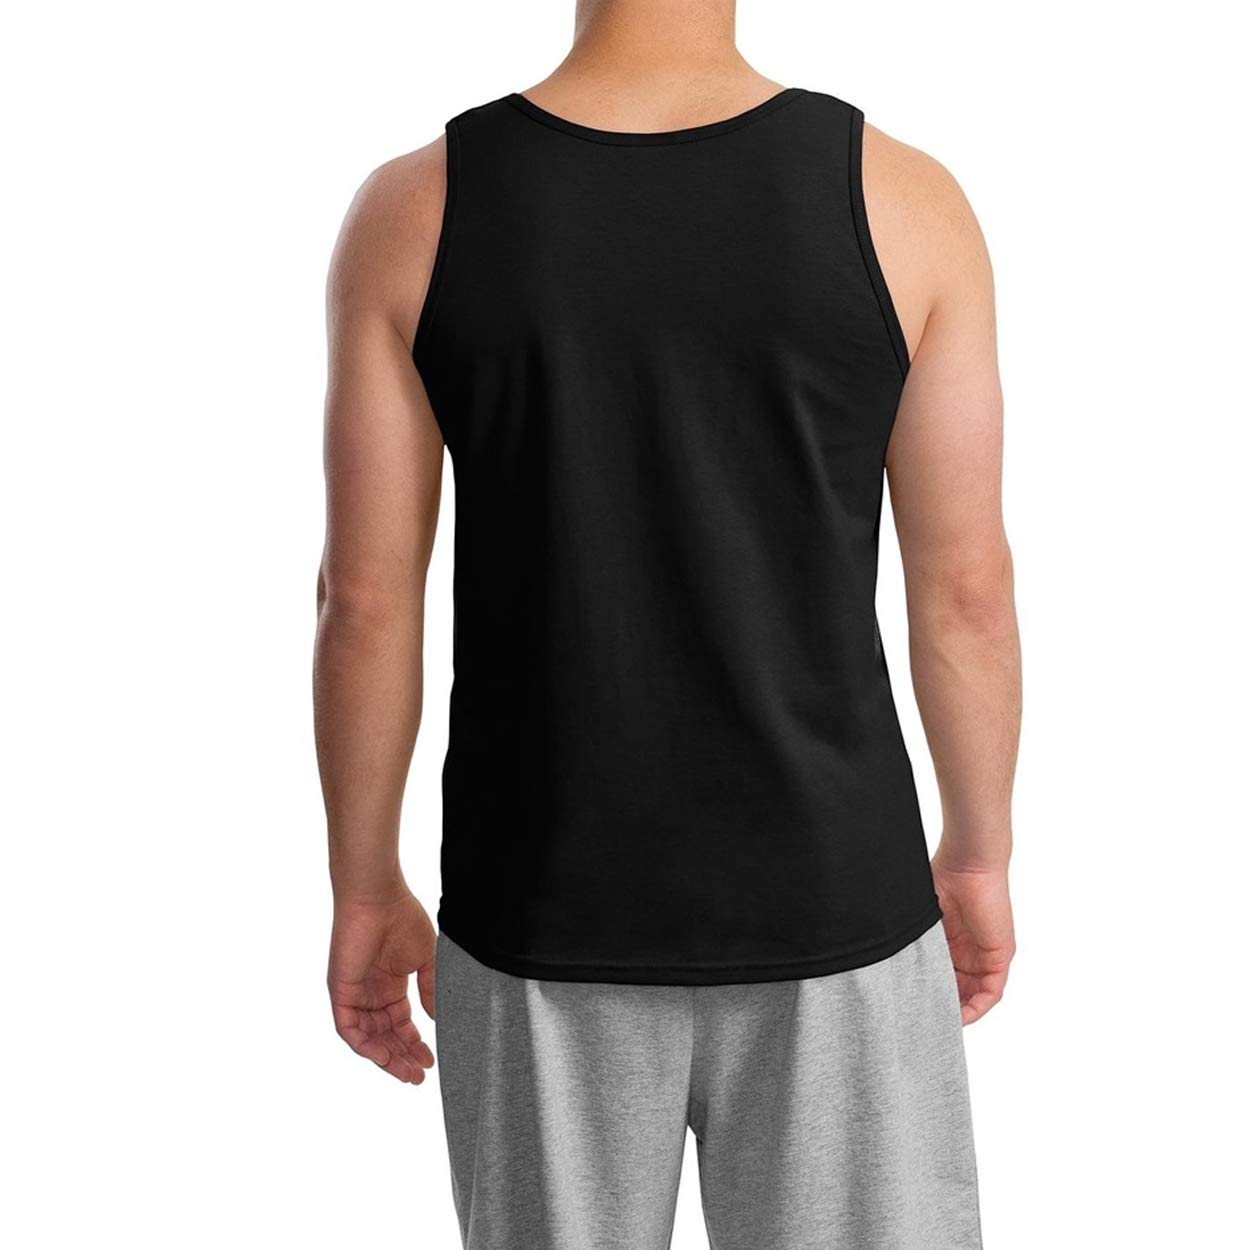 Oh No You Didnt Funny Classic Show Ghetto Urban Comedy 90s Humor Mens Tank Top